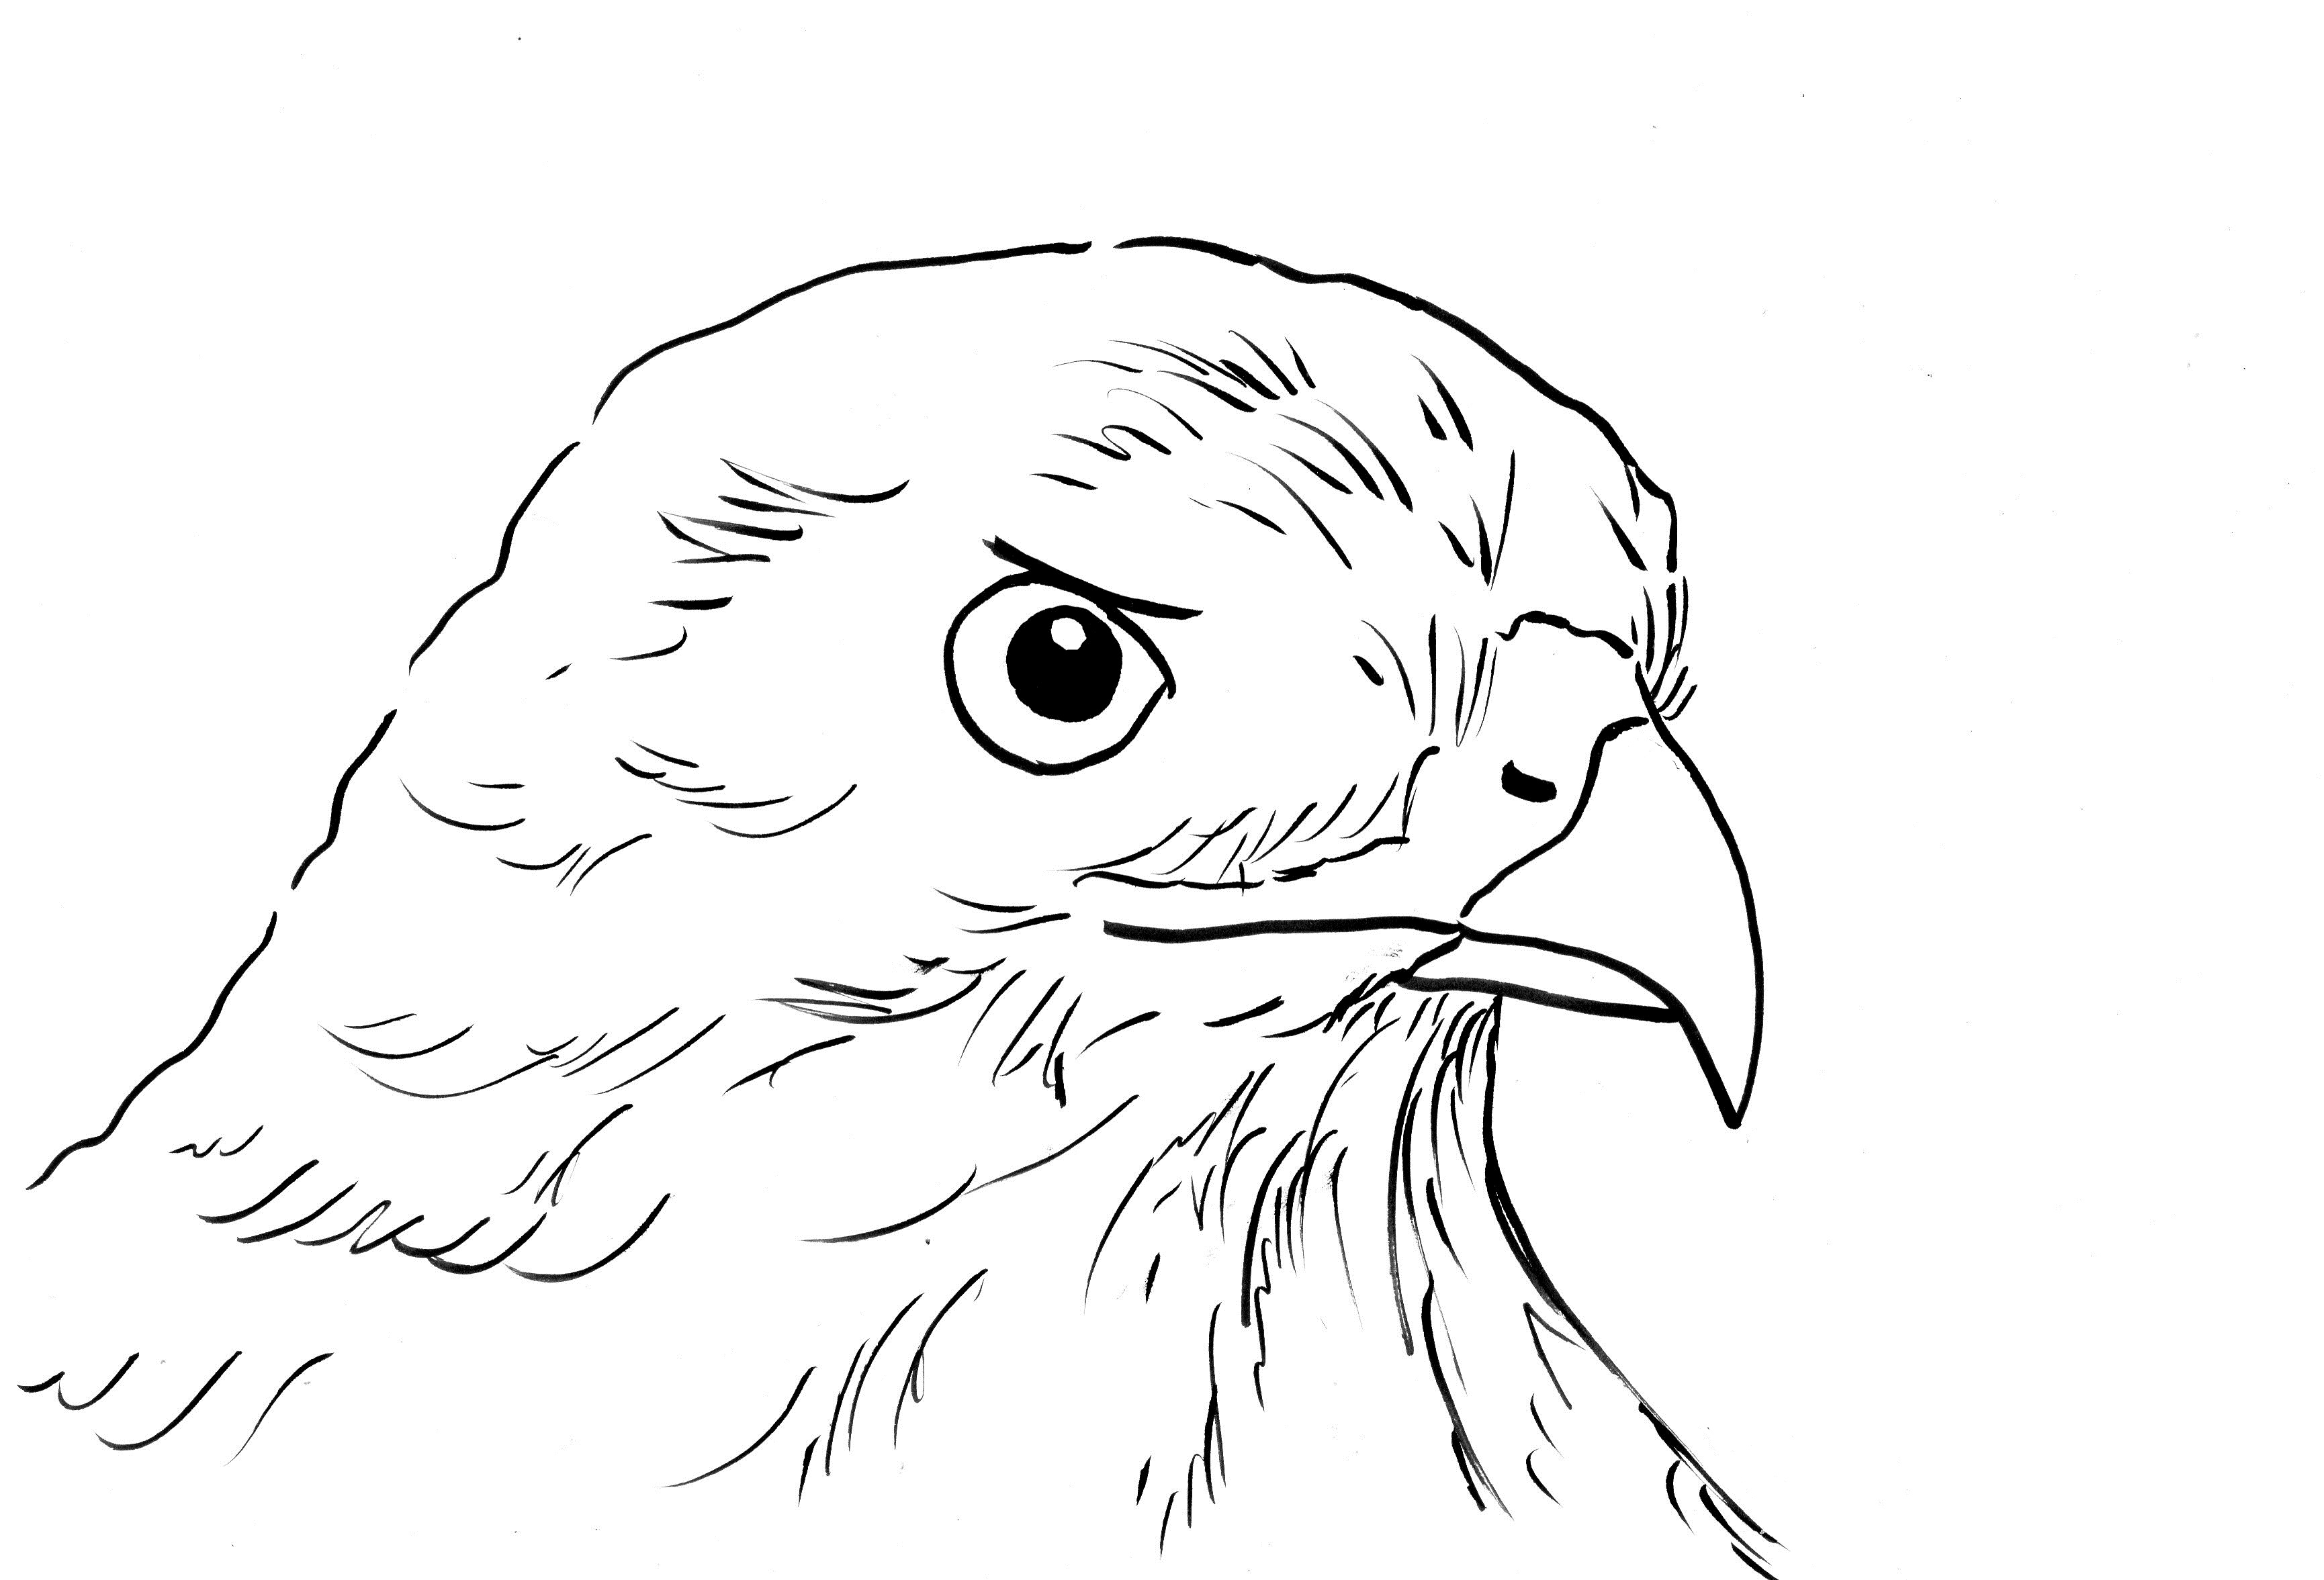 hawk coloring pages hawk coloring pages download and print hawk coloring pages coloring pages hawk